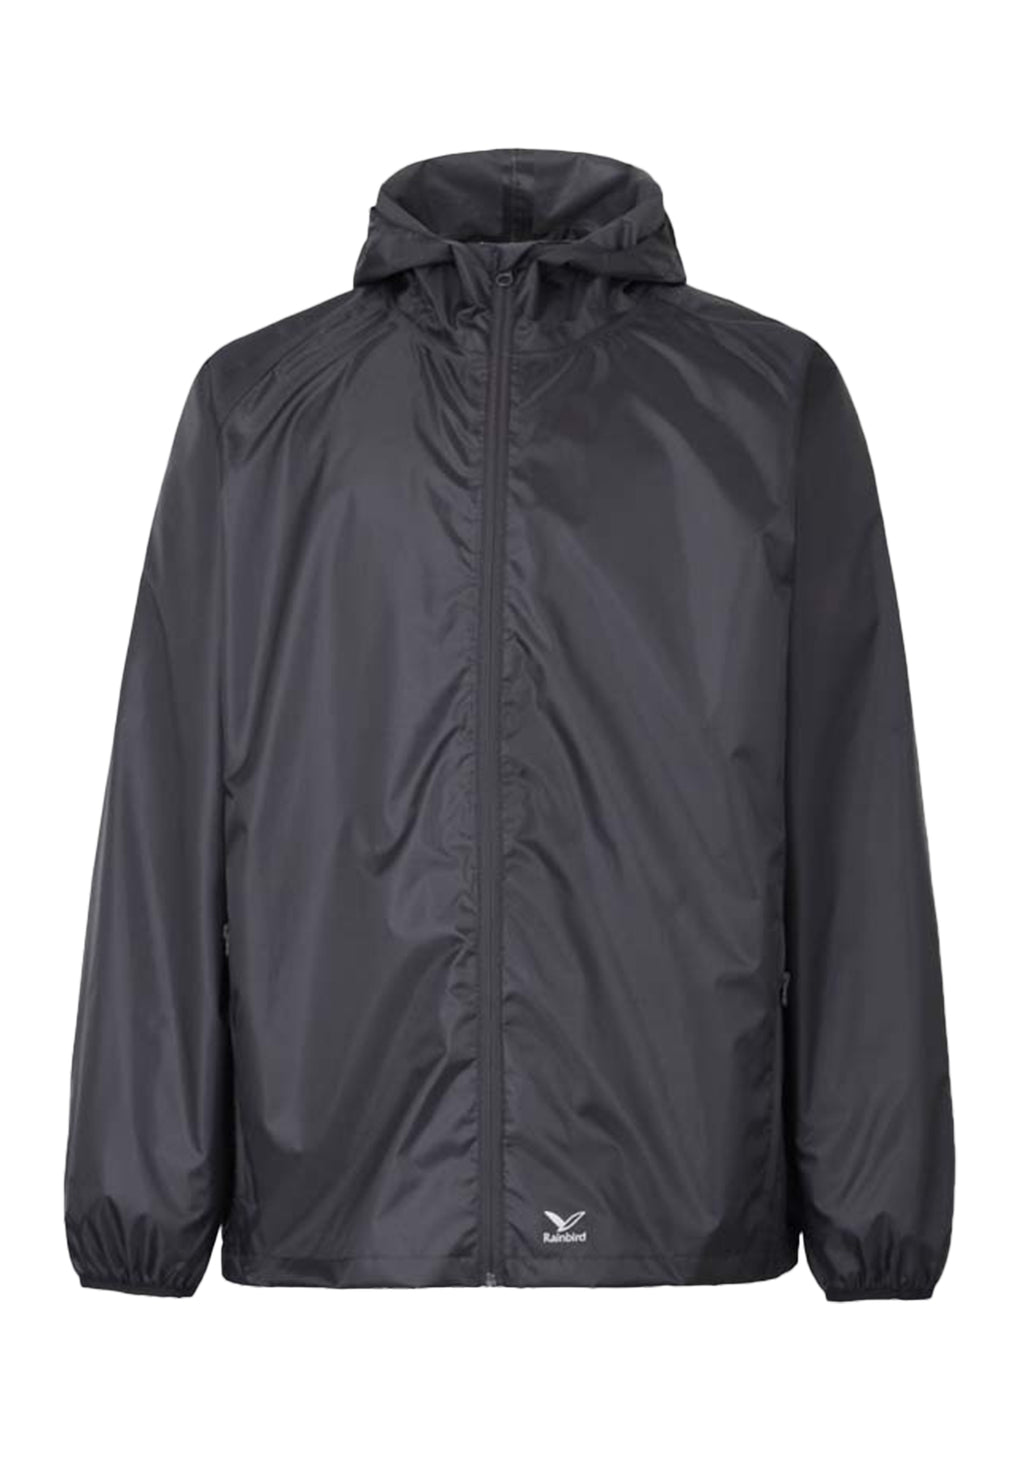 RAINBIRD UNISEX ADULTS GOSTOW RAIN JACKET BLACK <BR> 8531 BLK